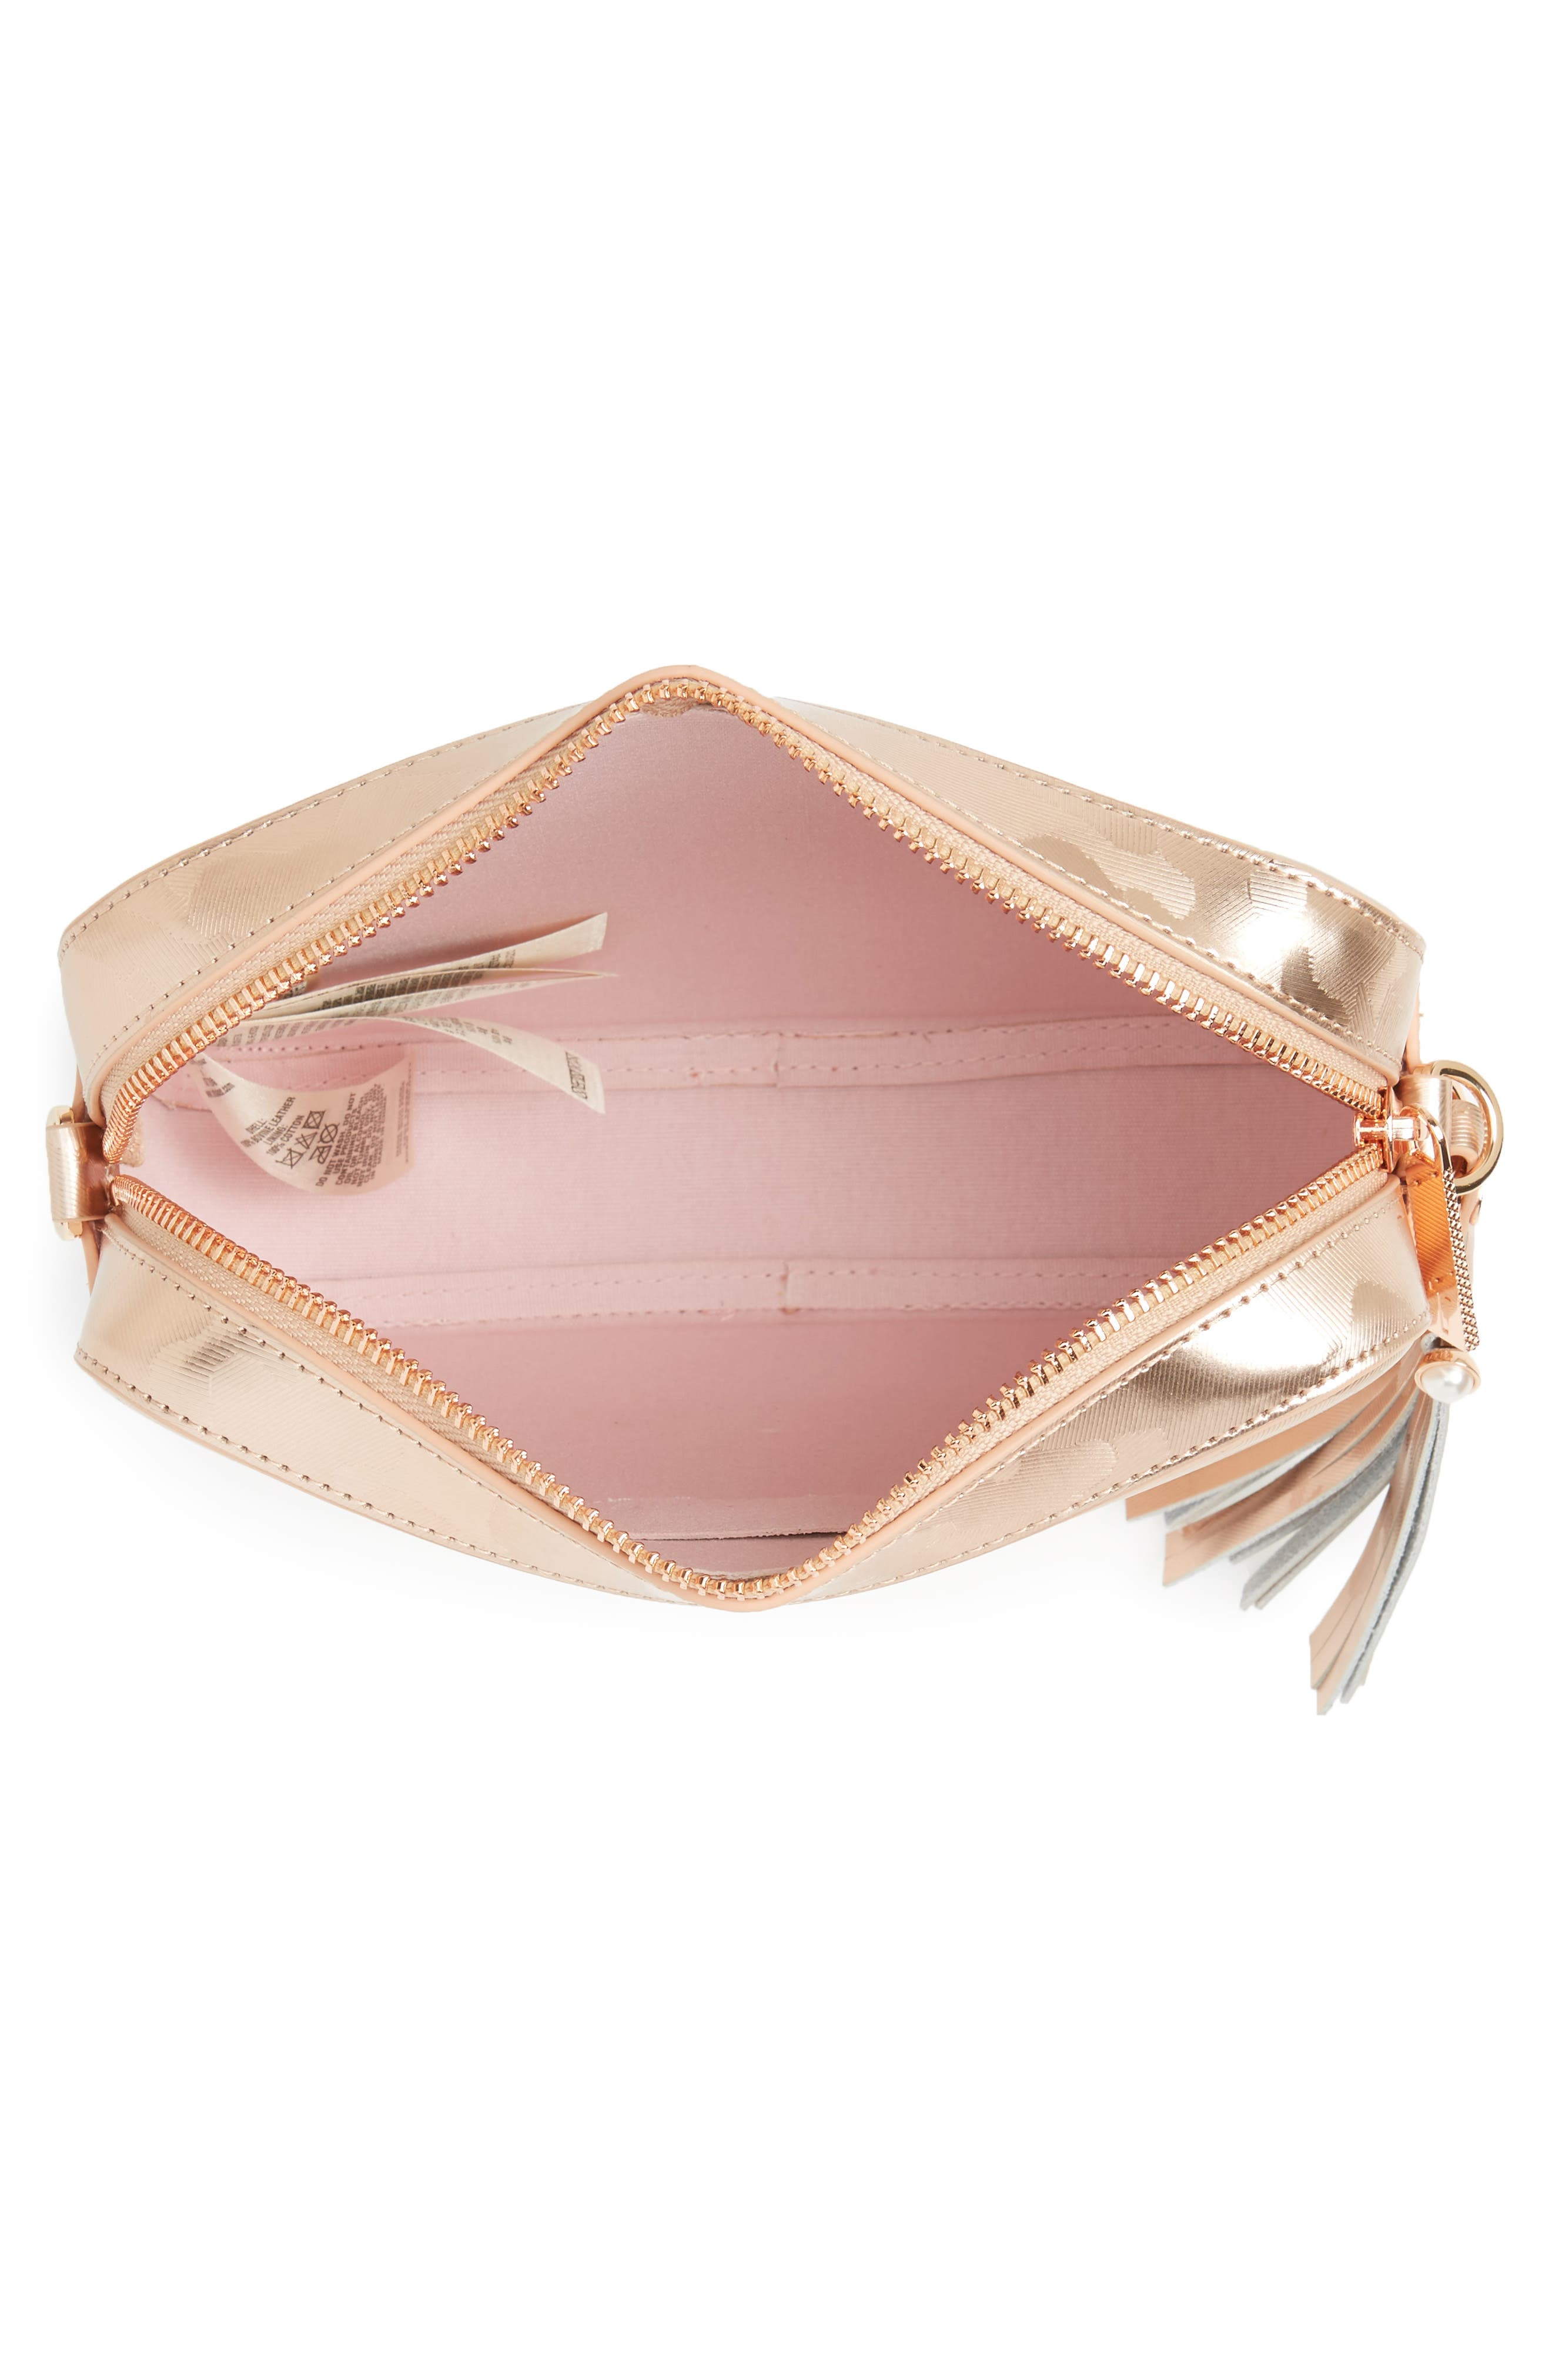 Camouflage Leather Camera Bag,                             Alternate thumbnail 6, color,                             Rose Gold